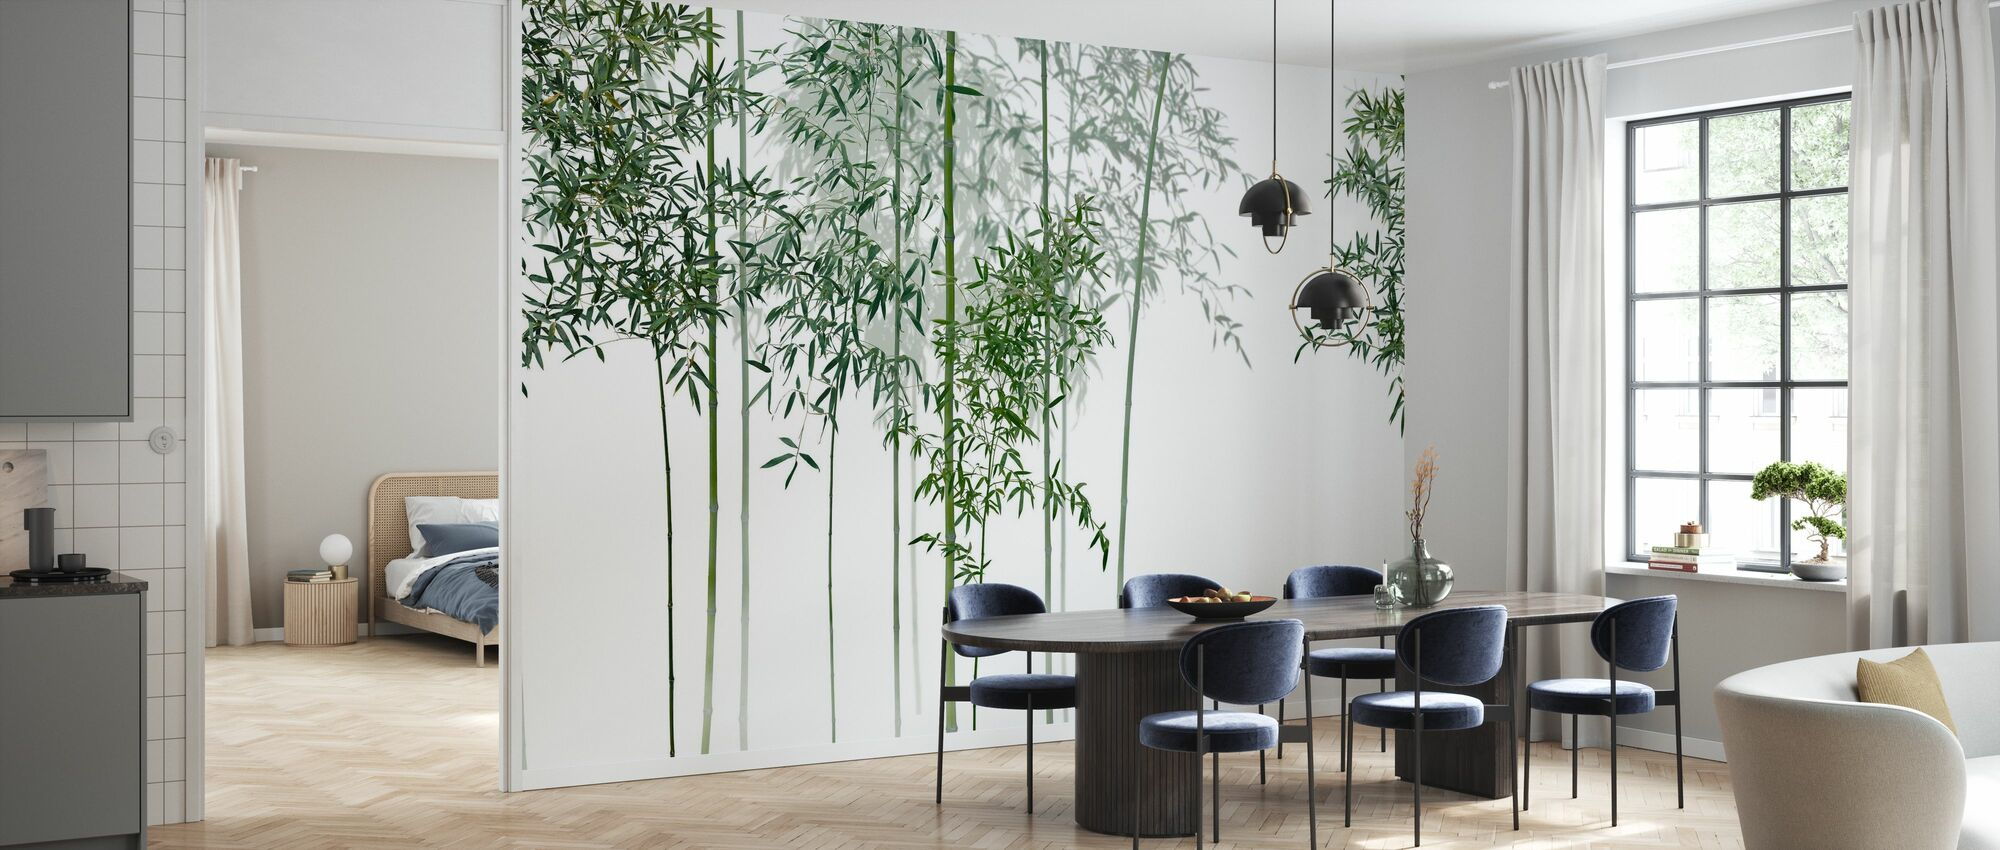 Bamboo Trees View - Wallpaper - Kitchen